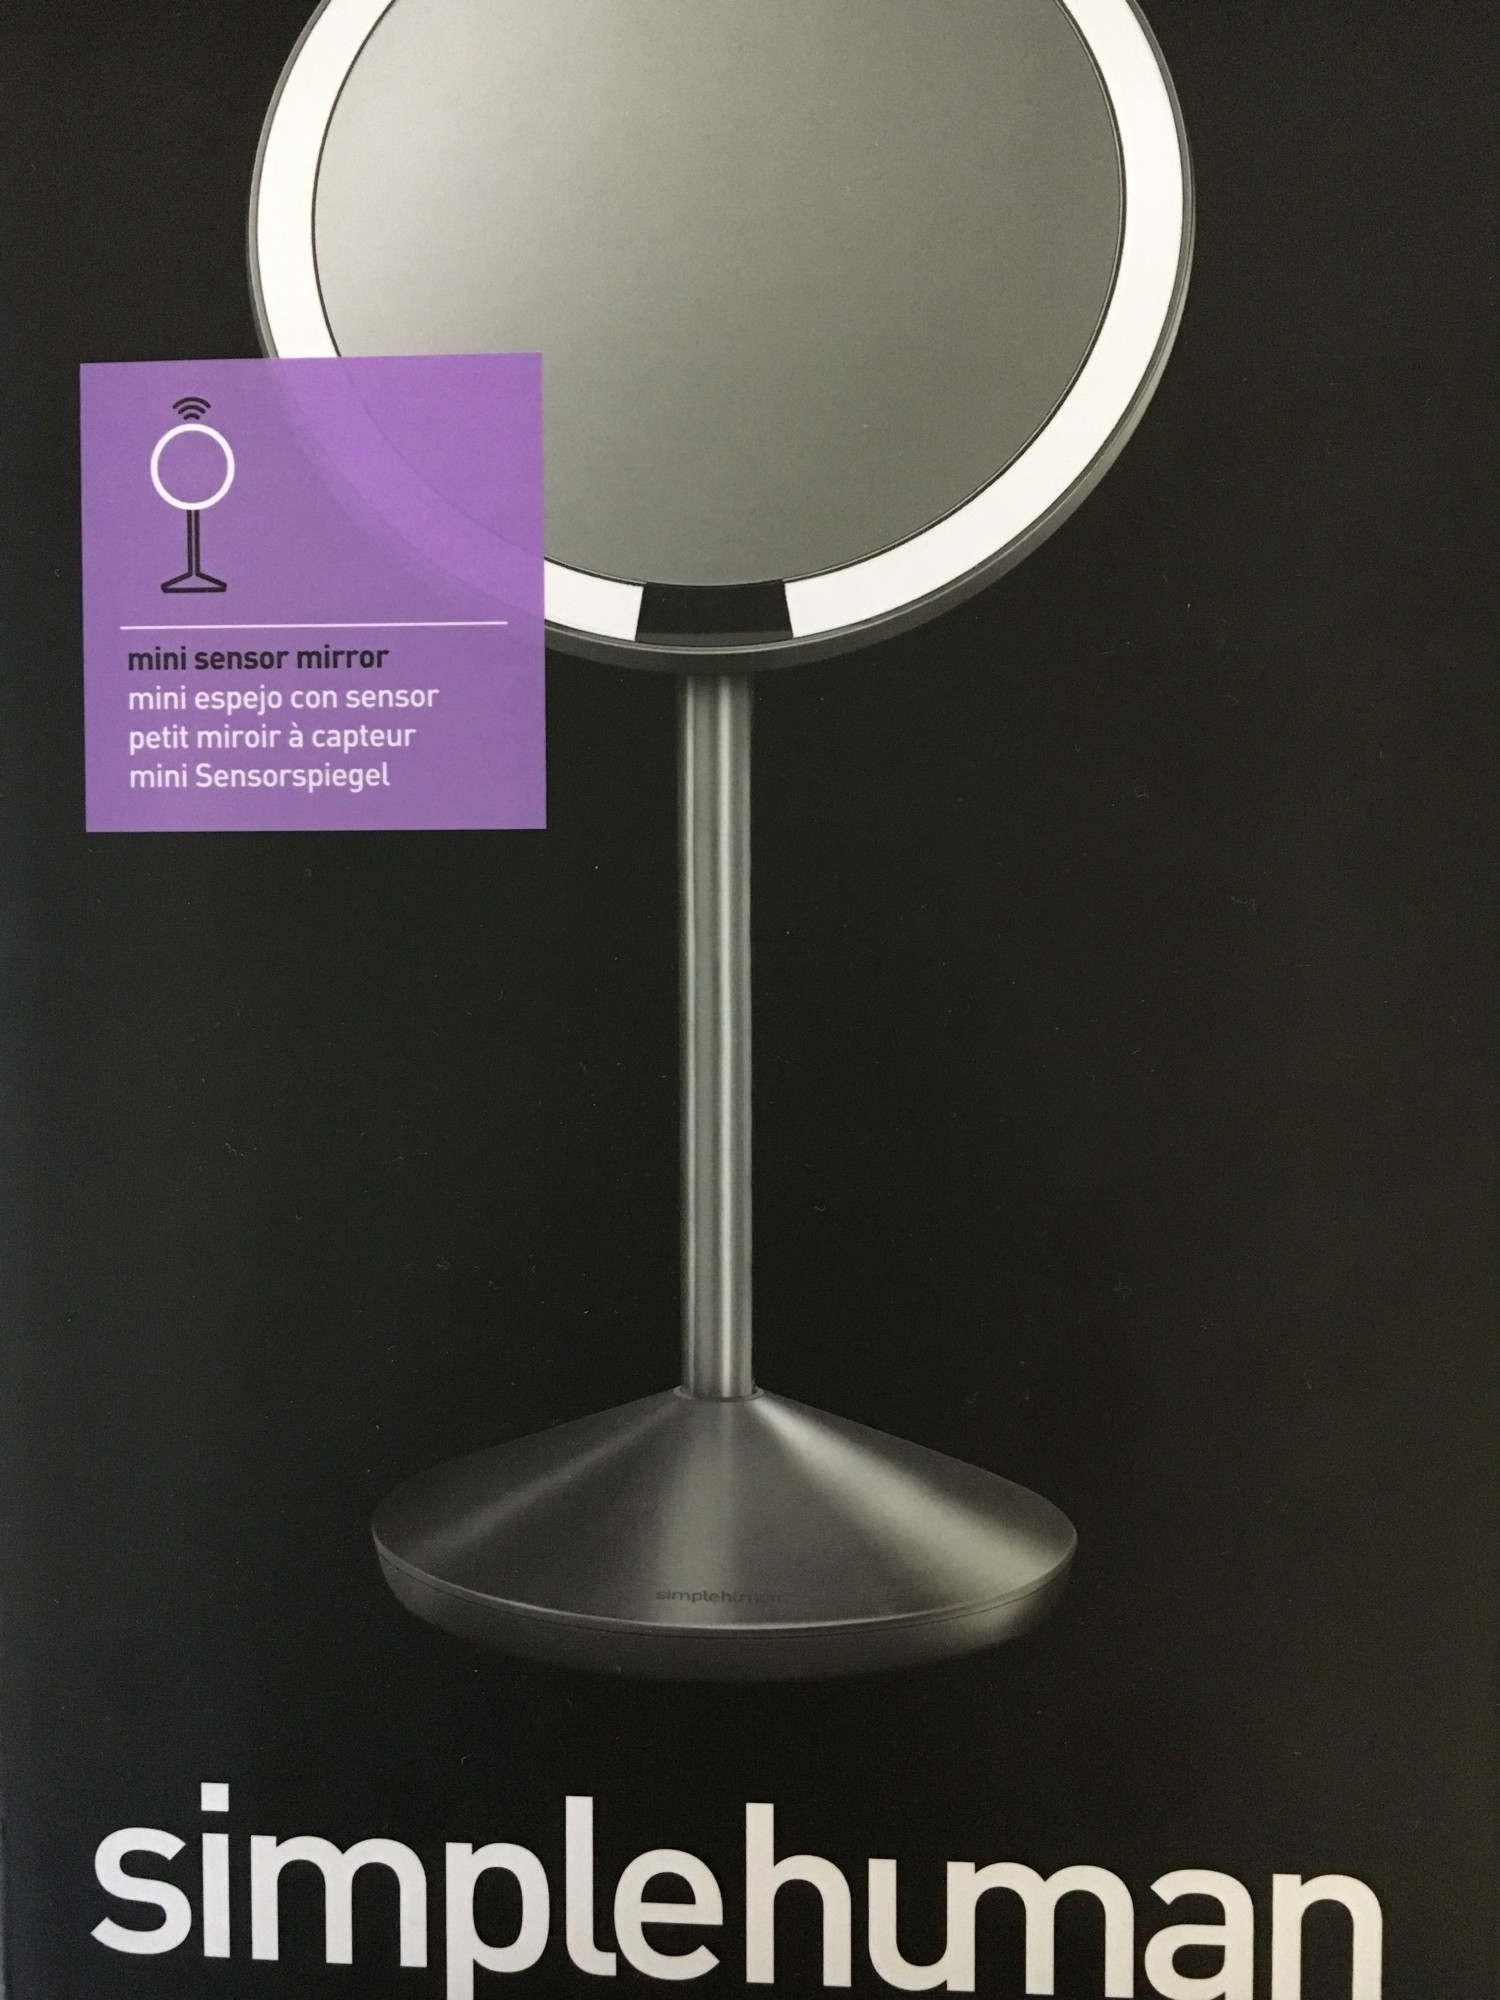 Simple Human Review Essentially Yours By Simplehuman It S